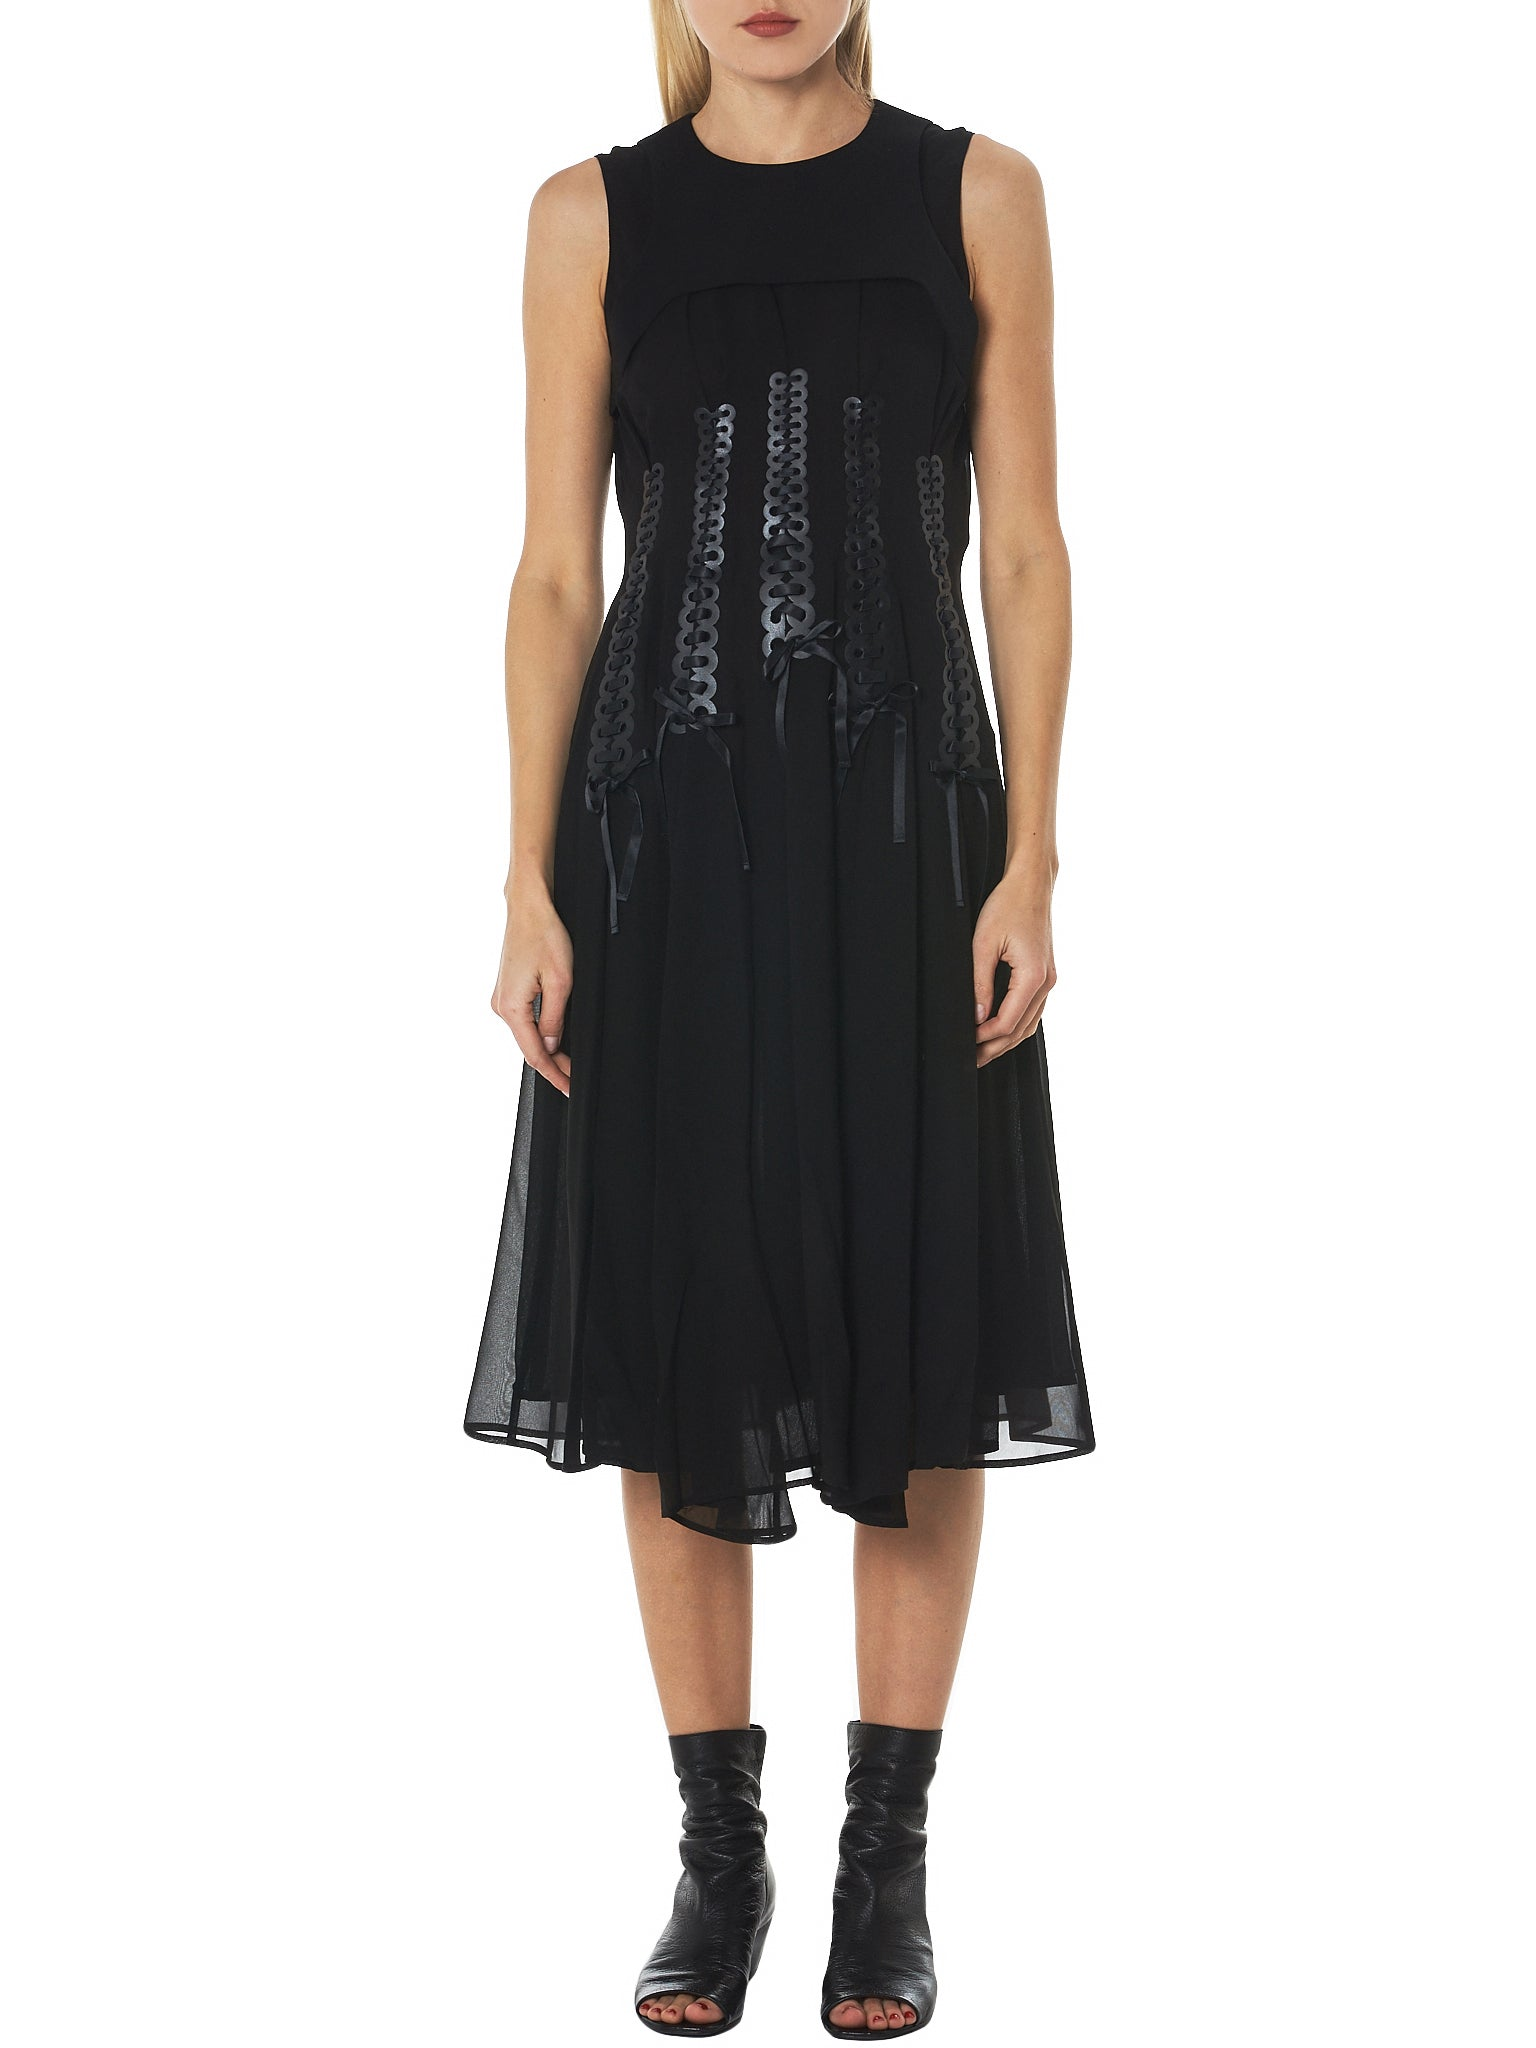 Noir by Kei Ninomiya Sleeveless Dress - Hlorenzo Front